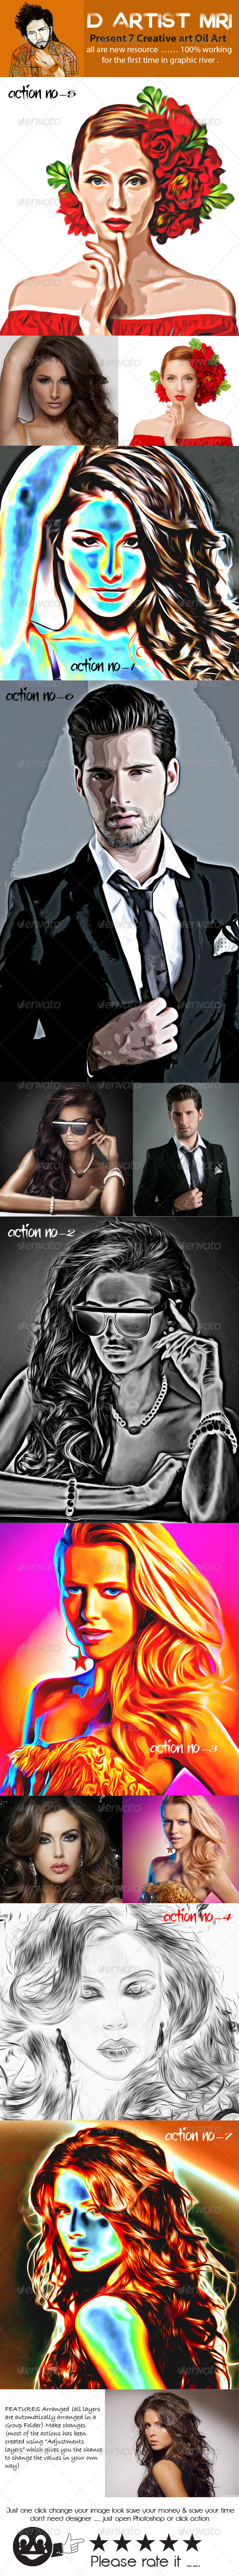 GraphicRiver Creative Oil Art 7977511